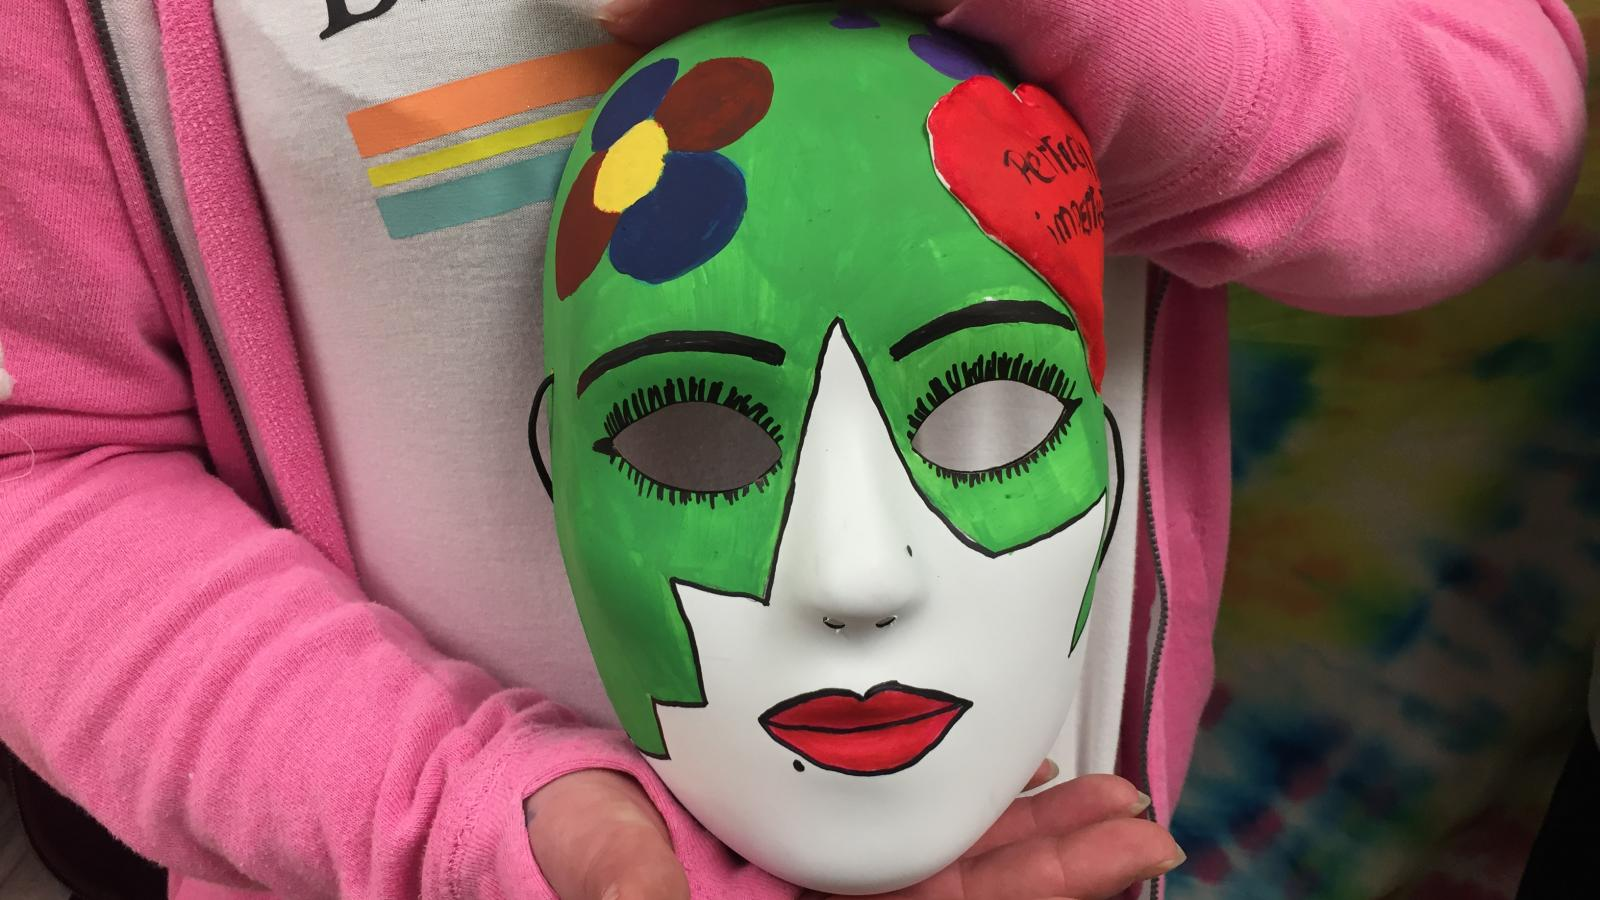 Close-up picture of Fawn's art therapy mask as she holds it.